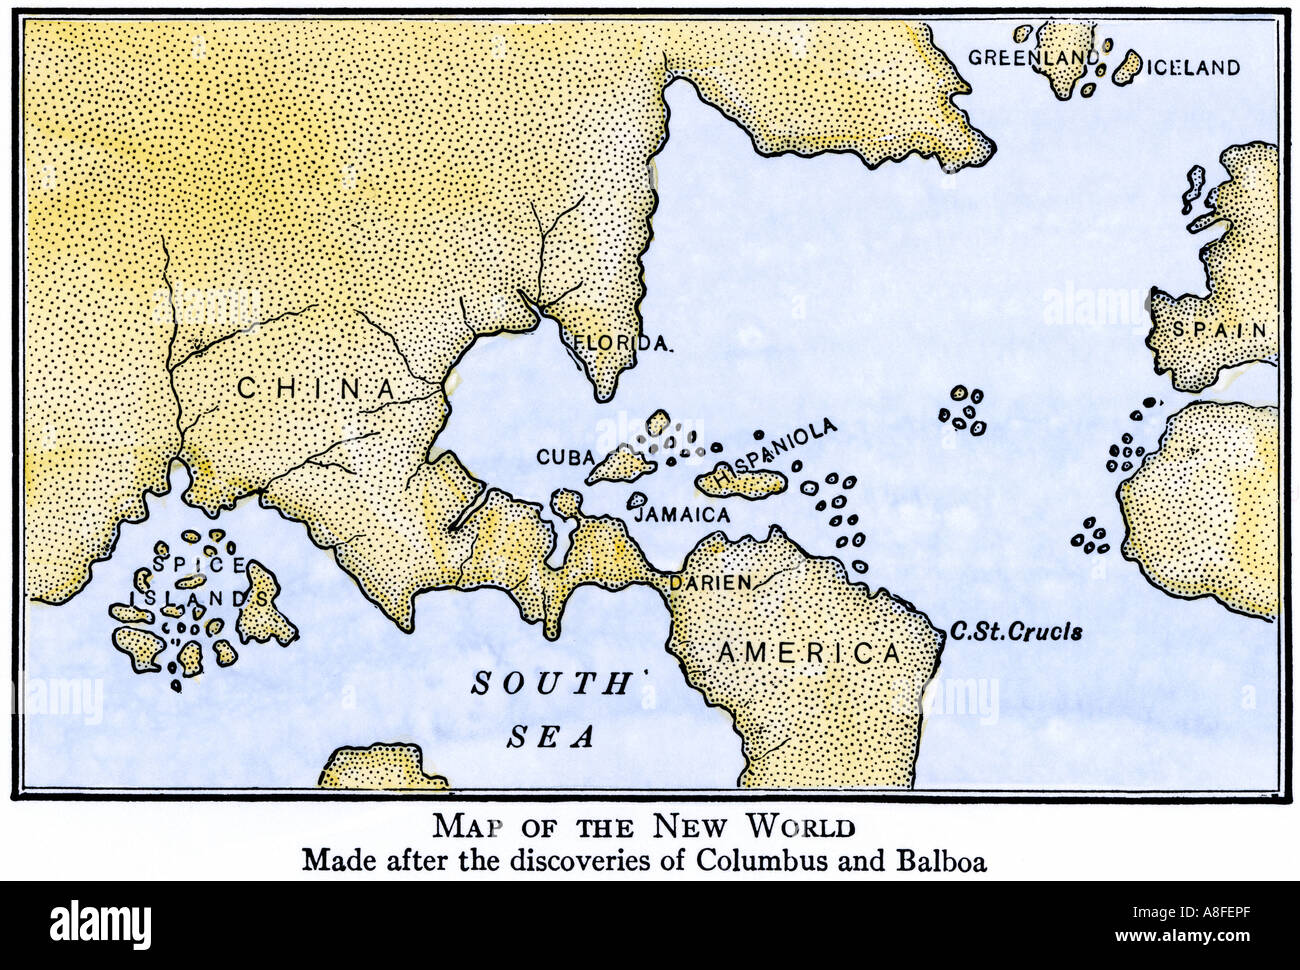 New world map showing south america attached to asia as assumed new world map showing south america attached to asia as assumed after the disoveries of columbus and balboa gumiabroncs Gallery